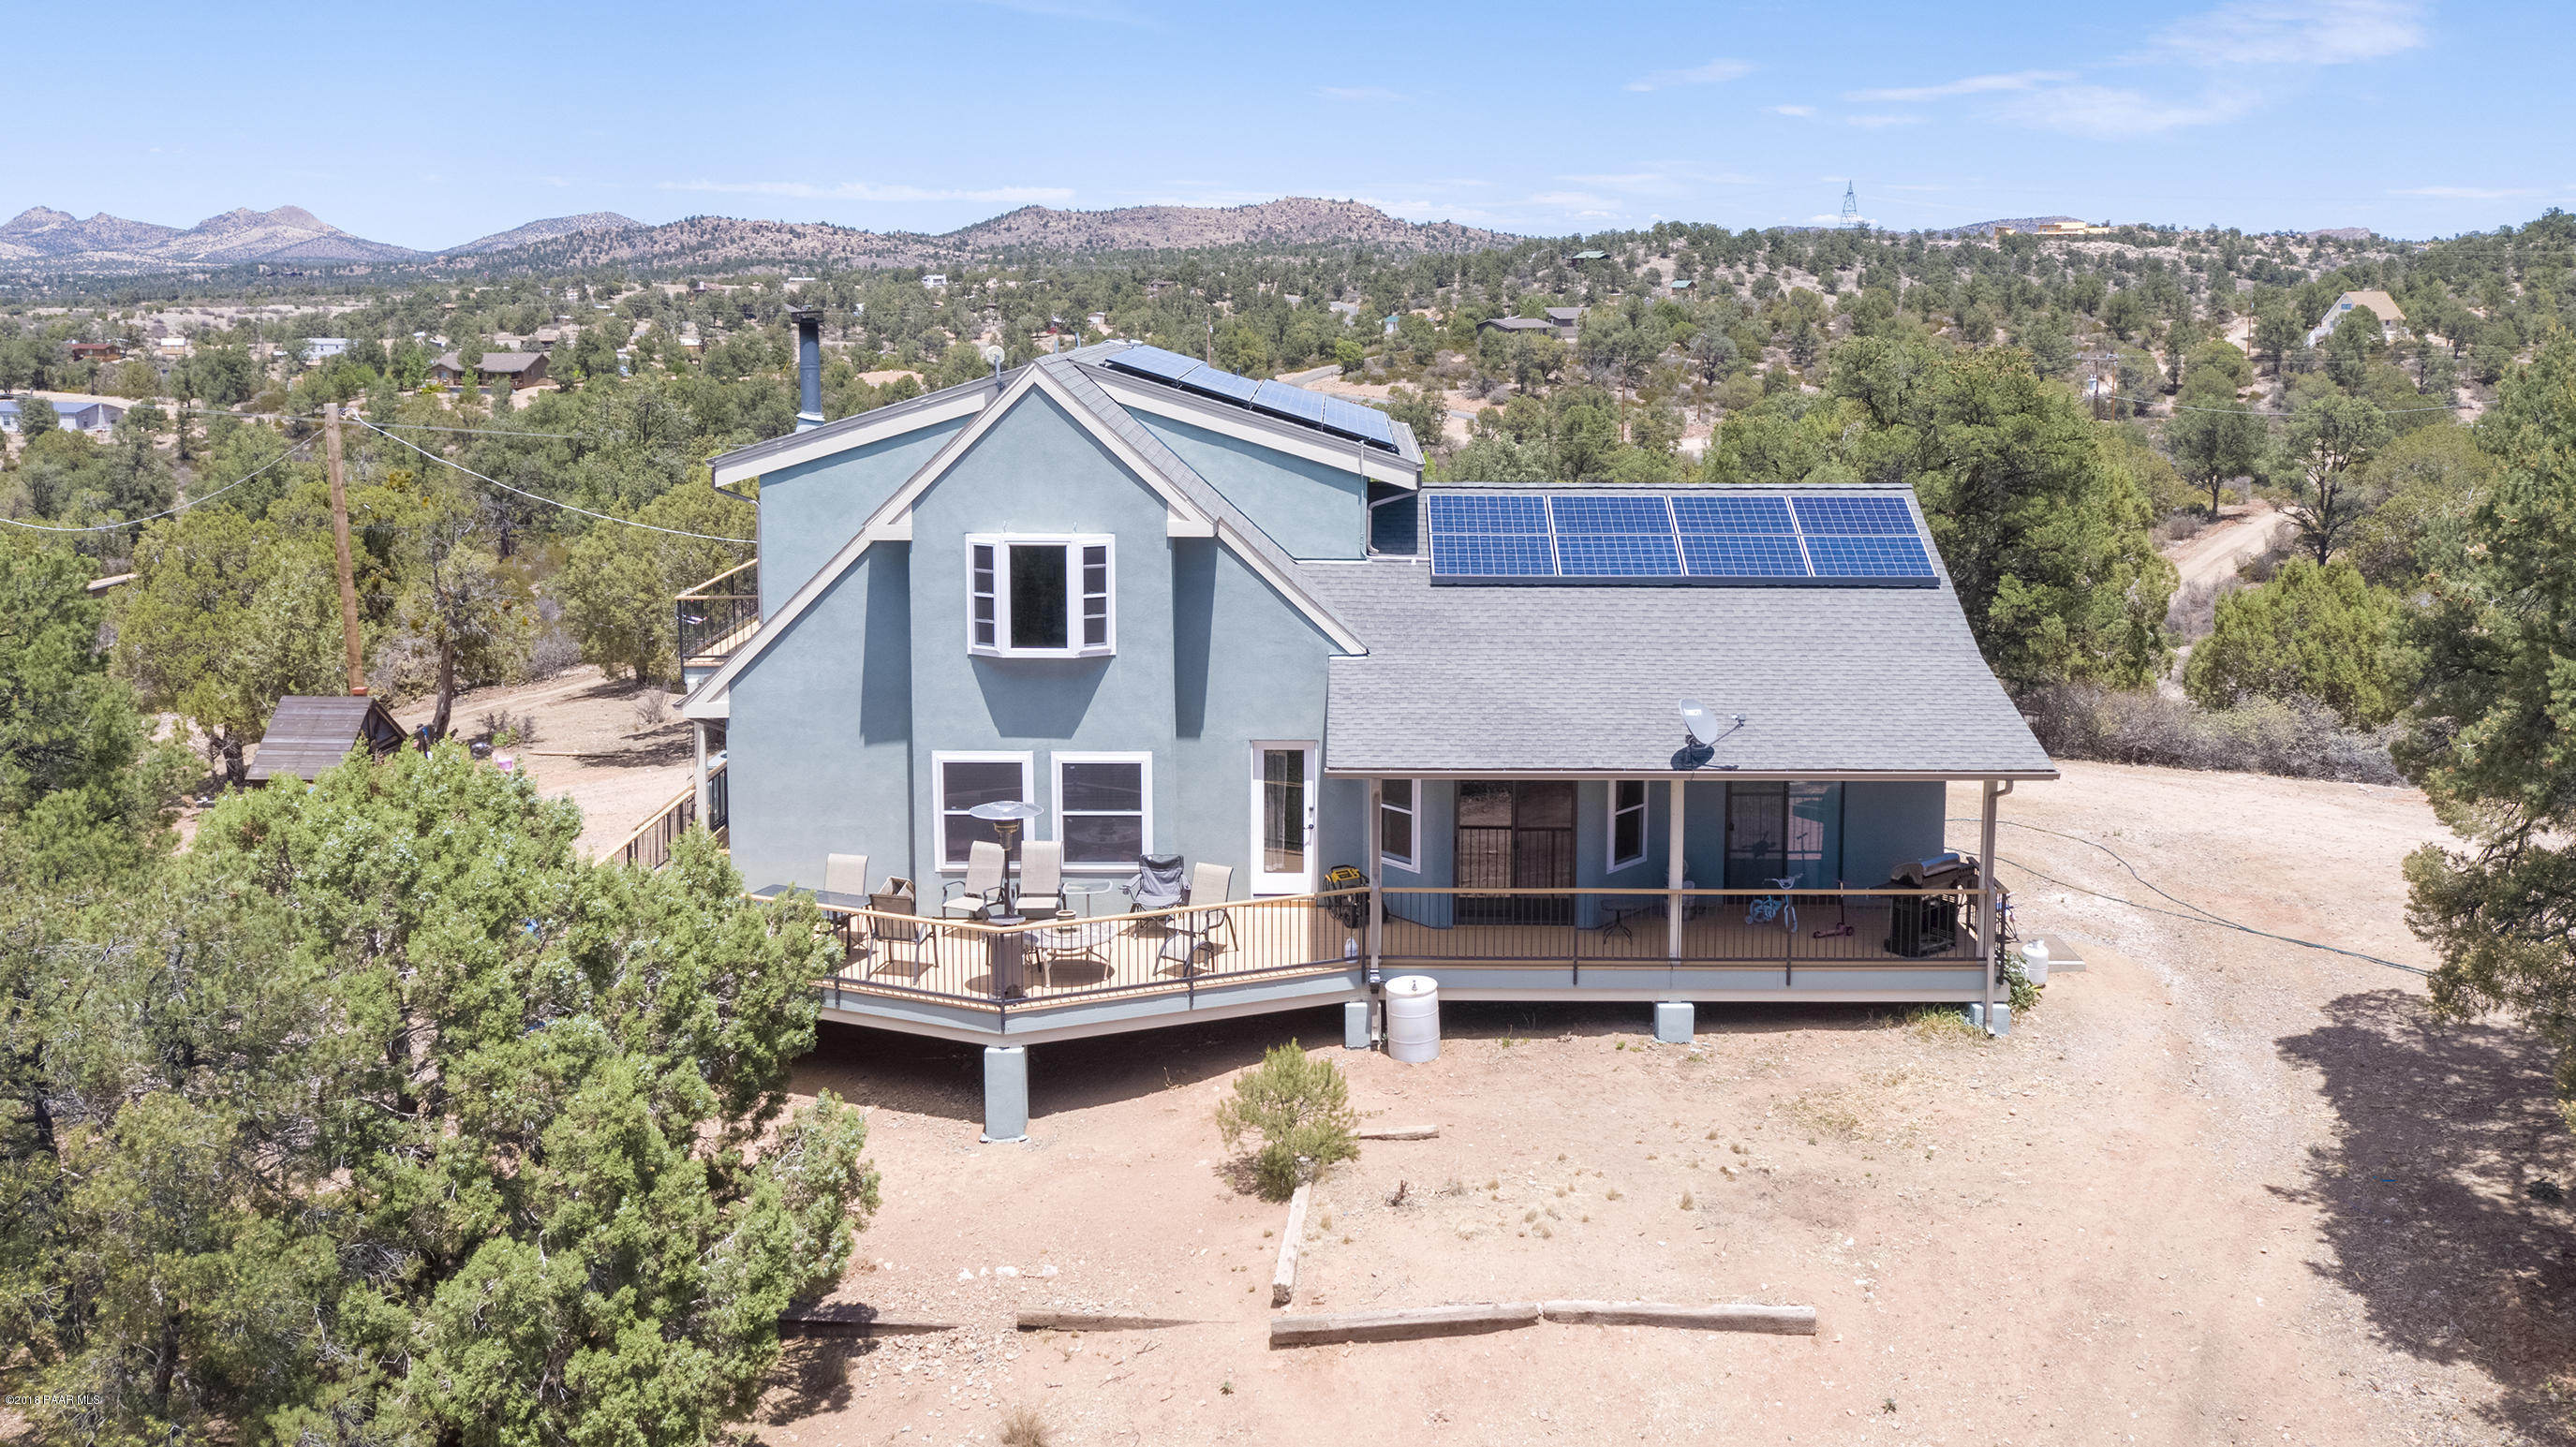 14800 N Deerview Trail, Prescott Az 86305